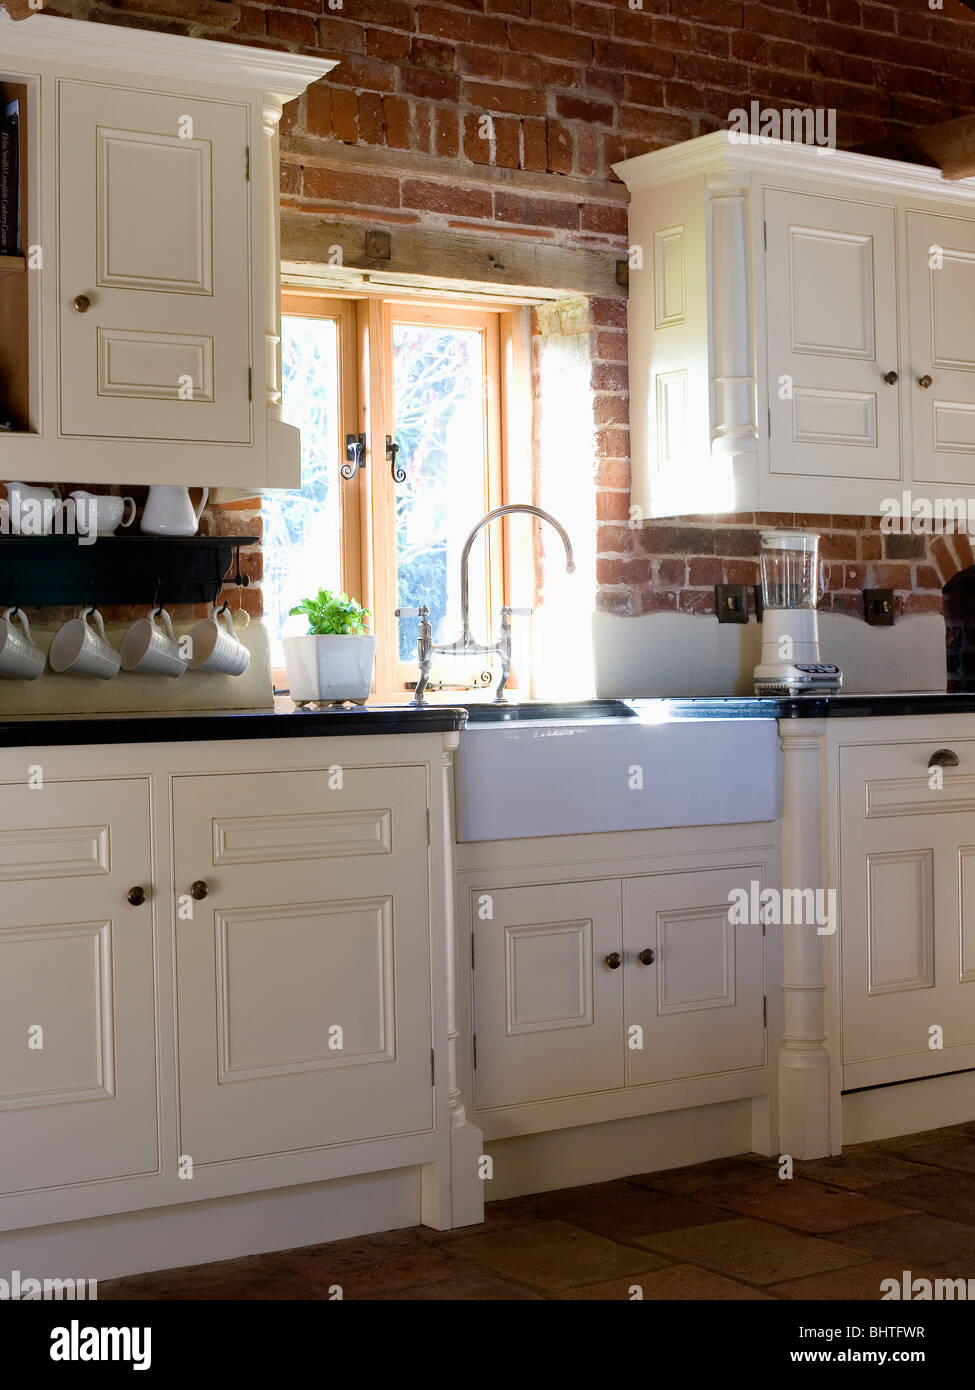 Belfast Sink Below Window In Country Kitchen With Ed Cream Units And Cupboards